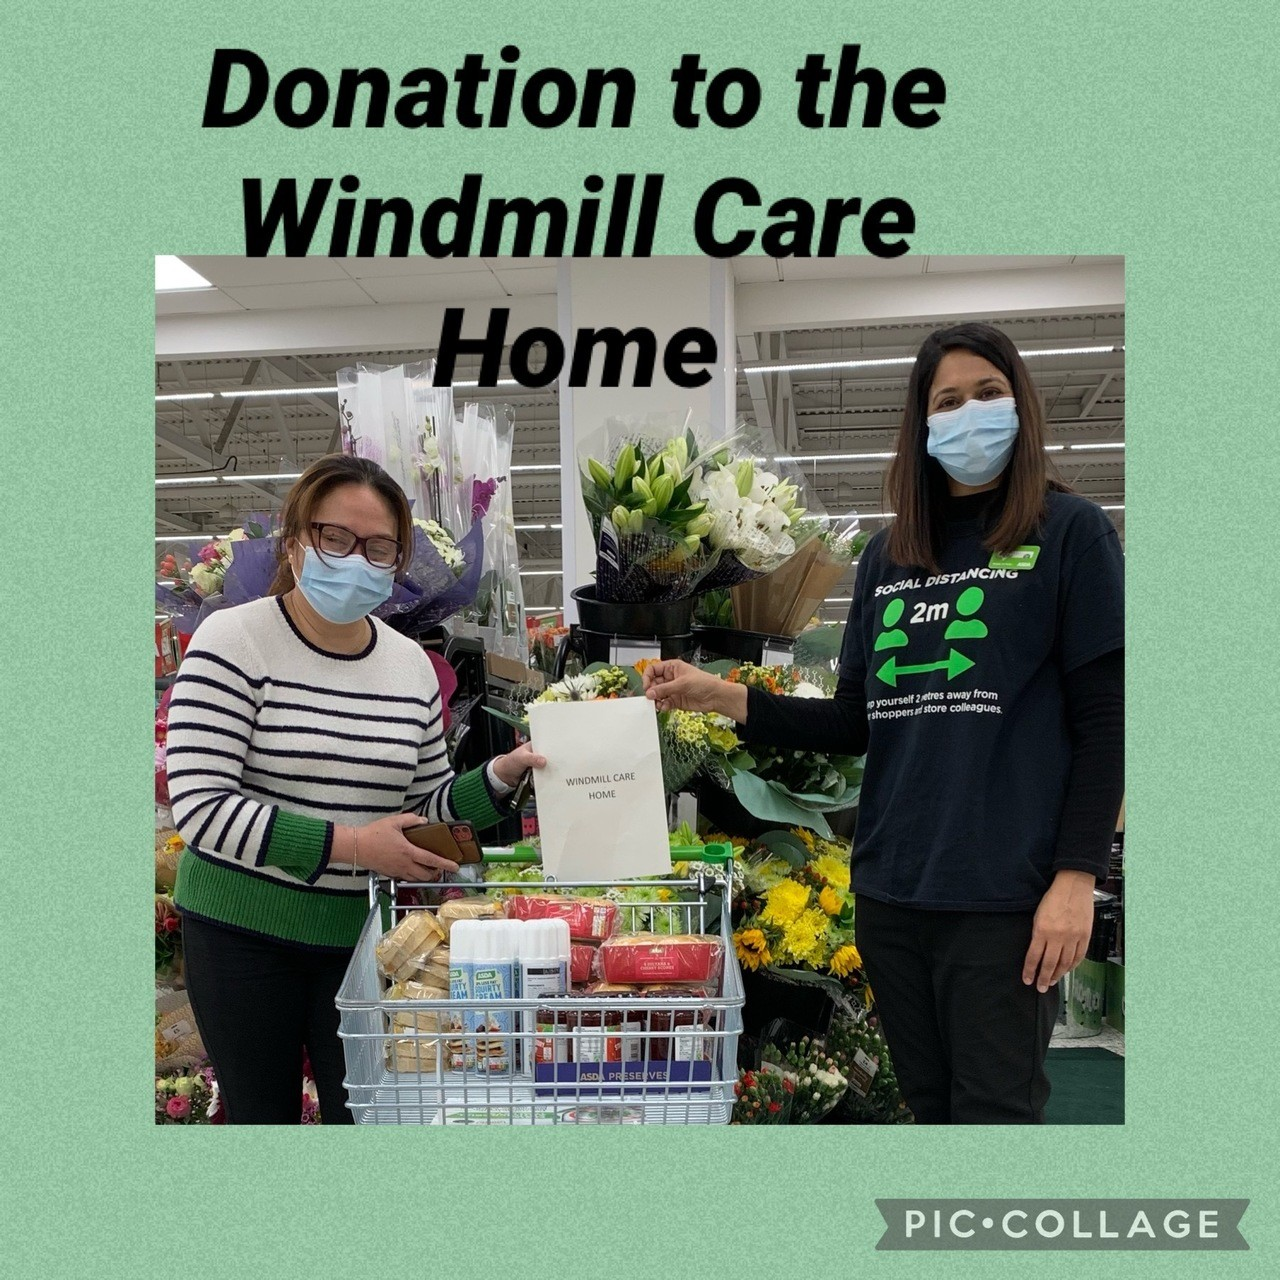 Donation to the Windmill Care Home | Asda Slough